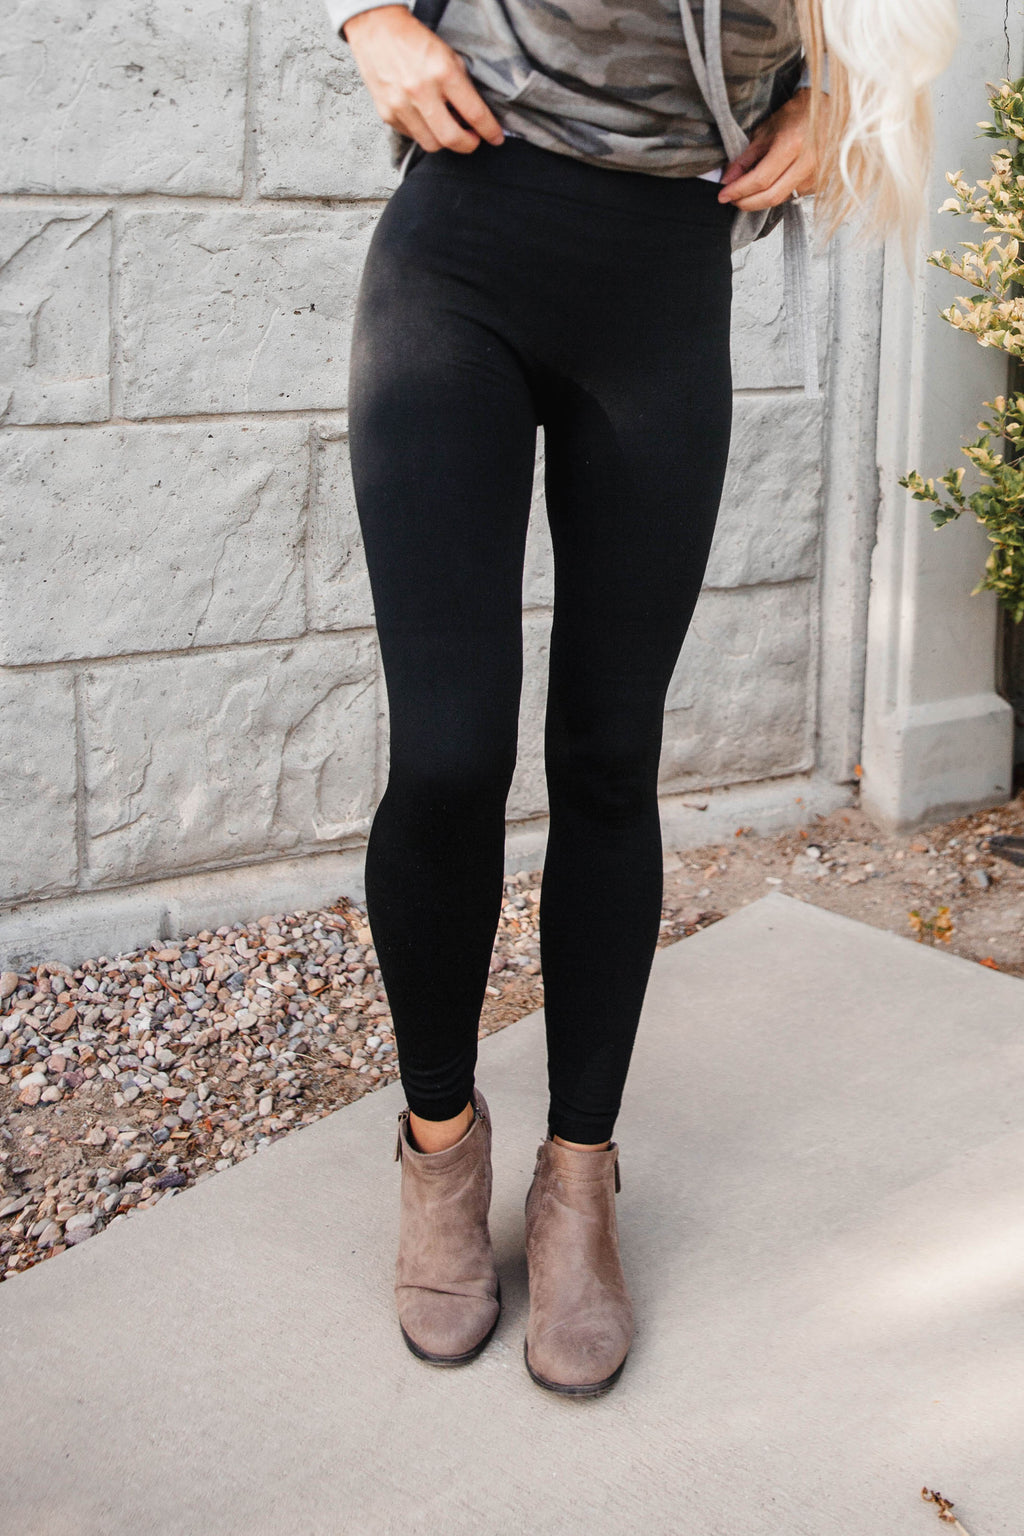 Remi Fleece Leggings (One Size) - DOORBUSTER PRICE ENDS 6:00 PM MT!